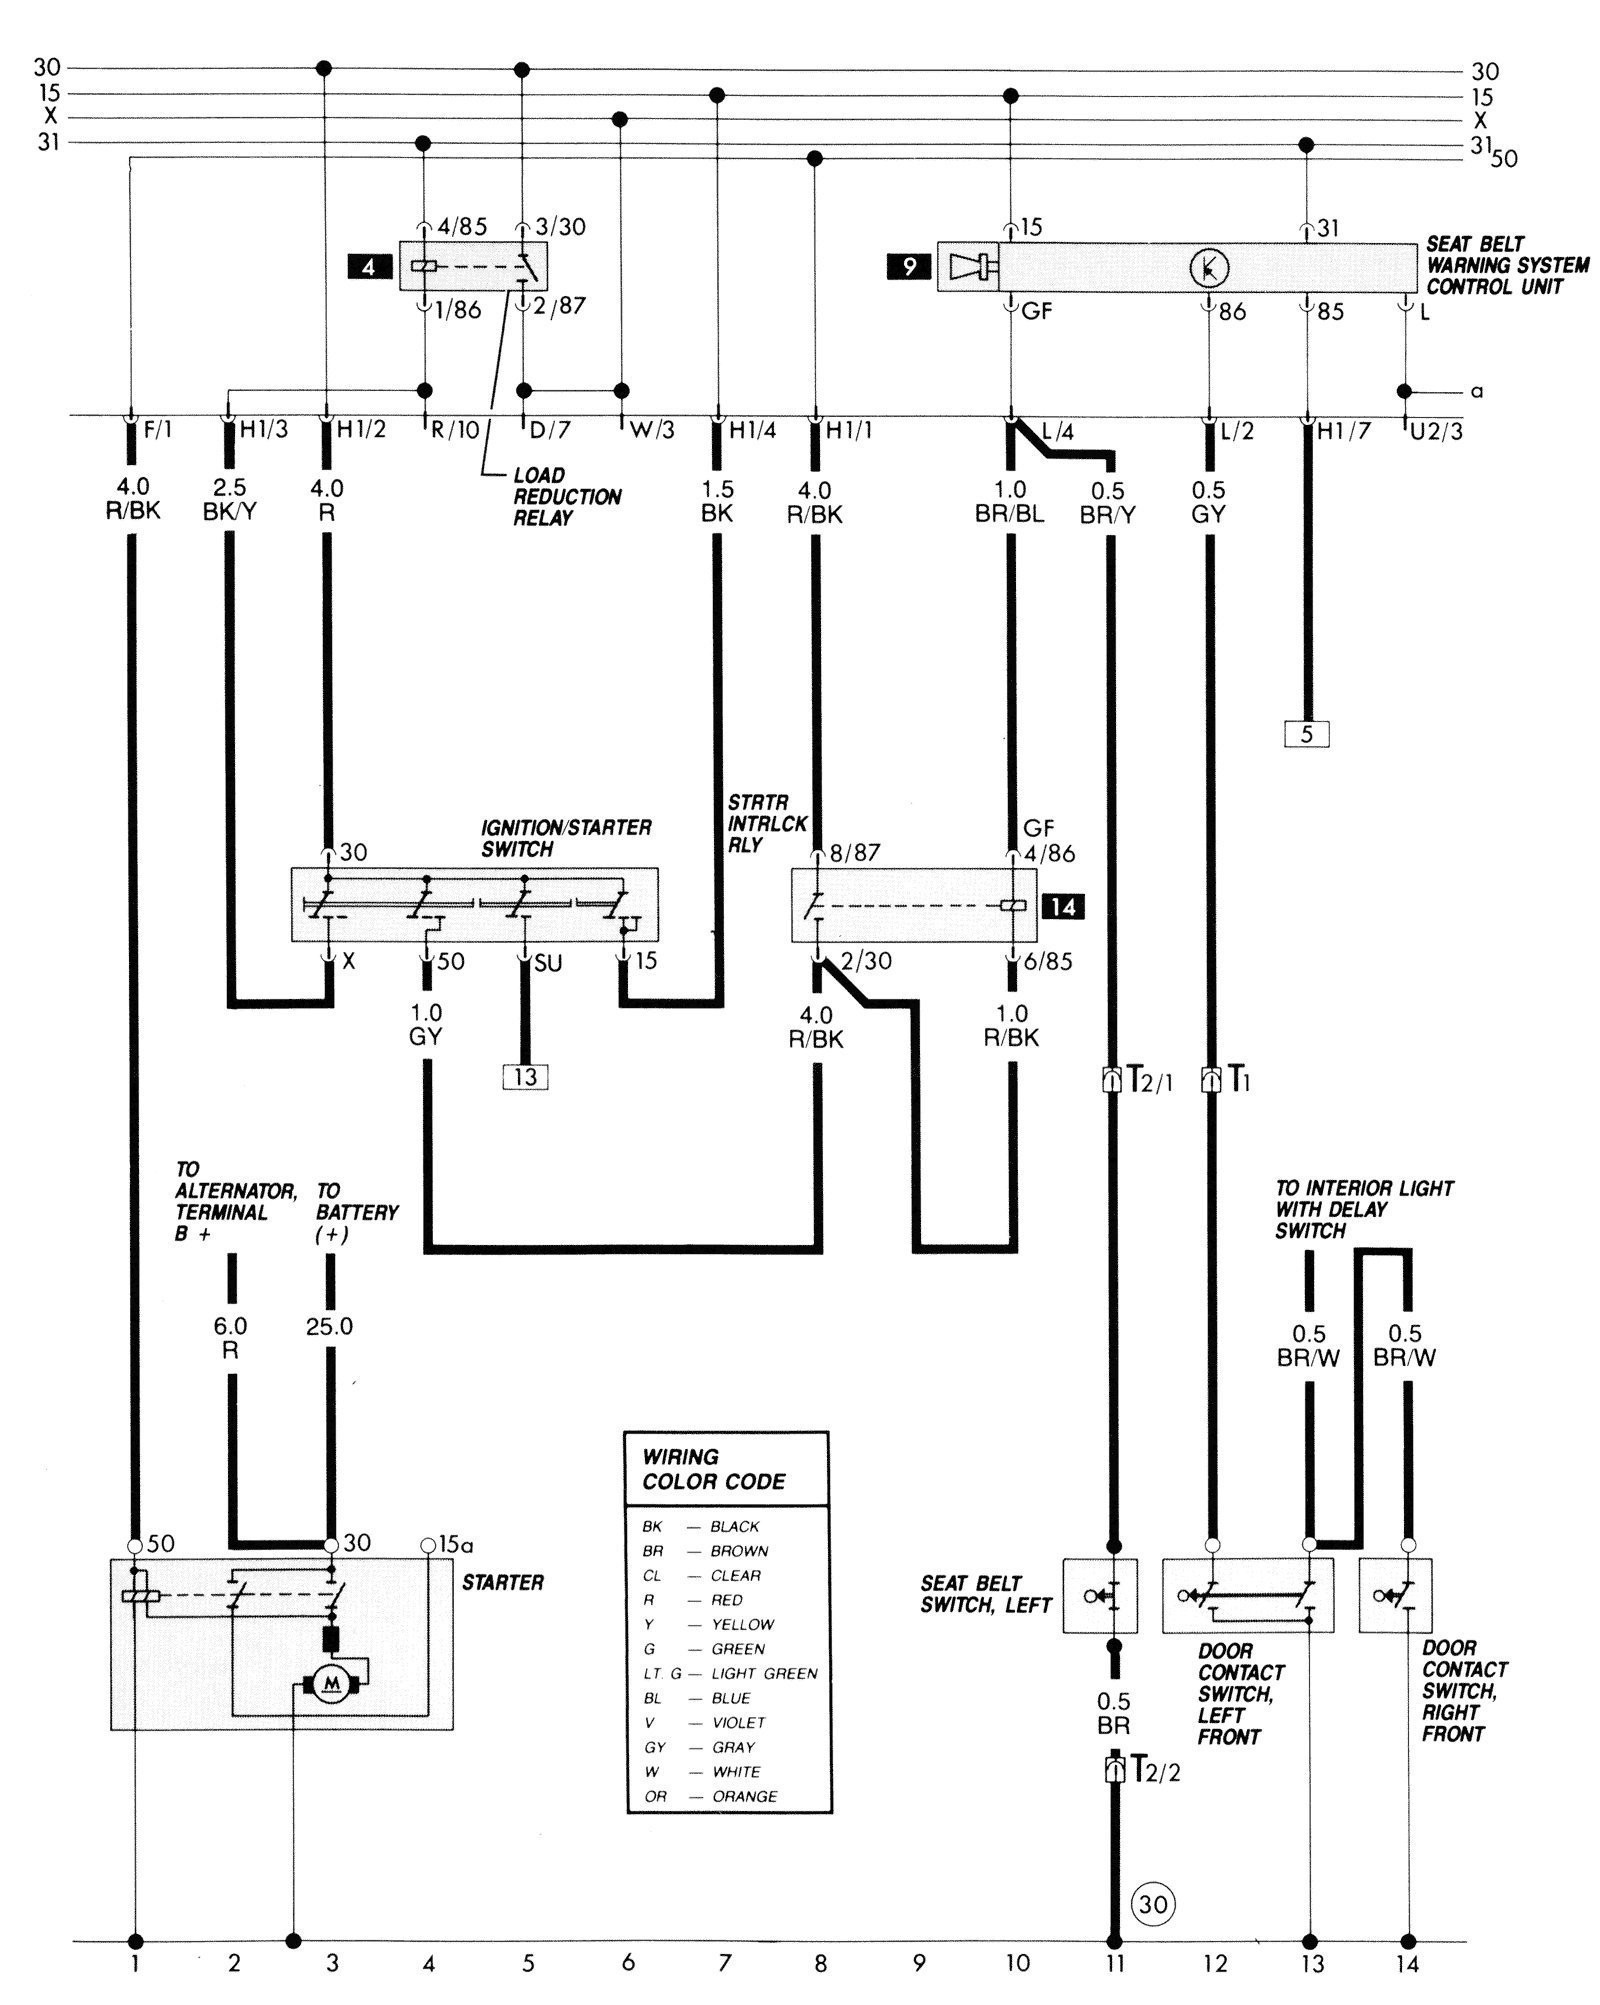 2008 Vw Jetta Wiring Diagram